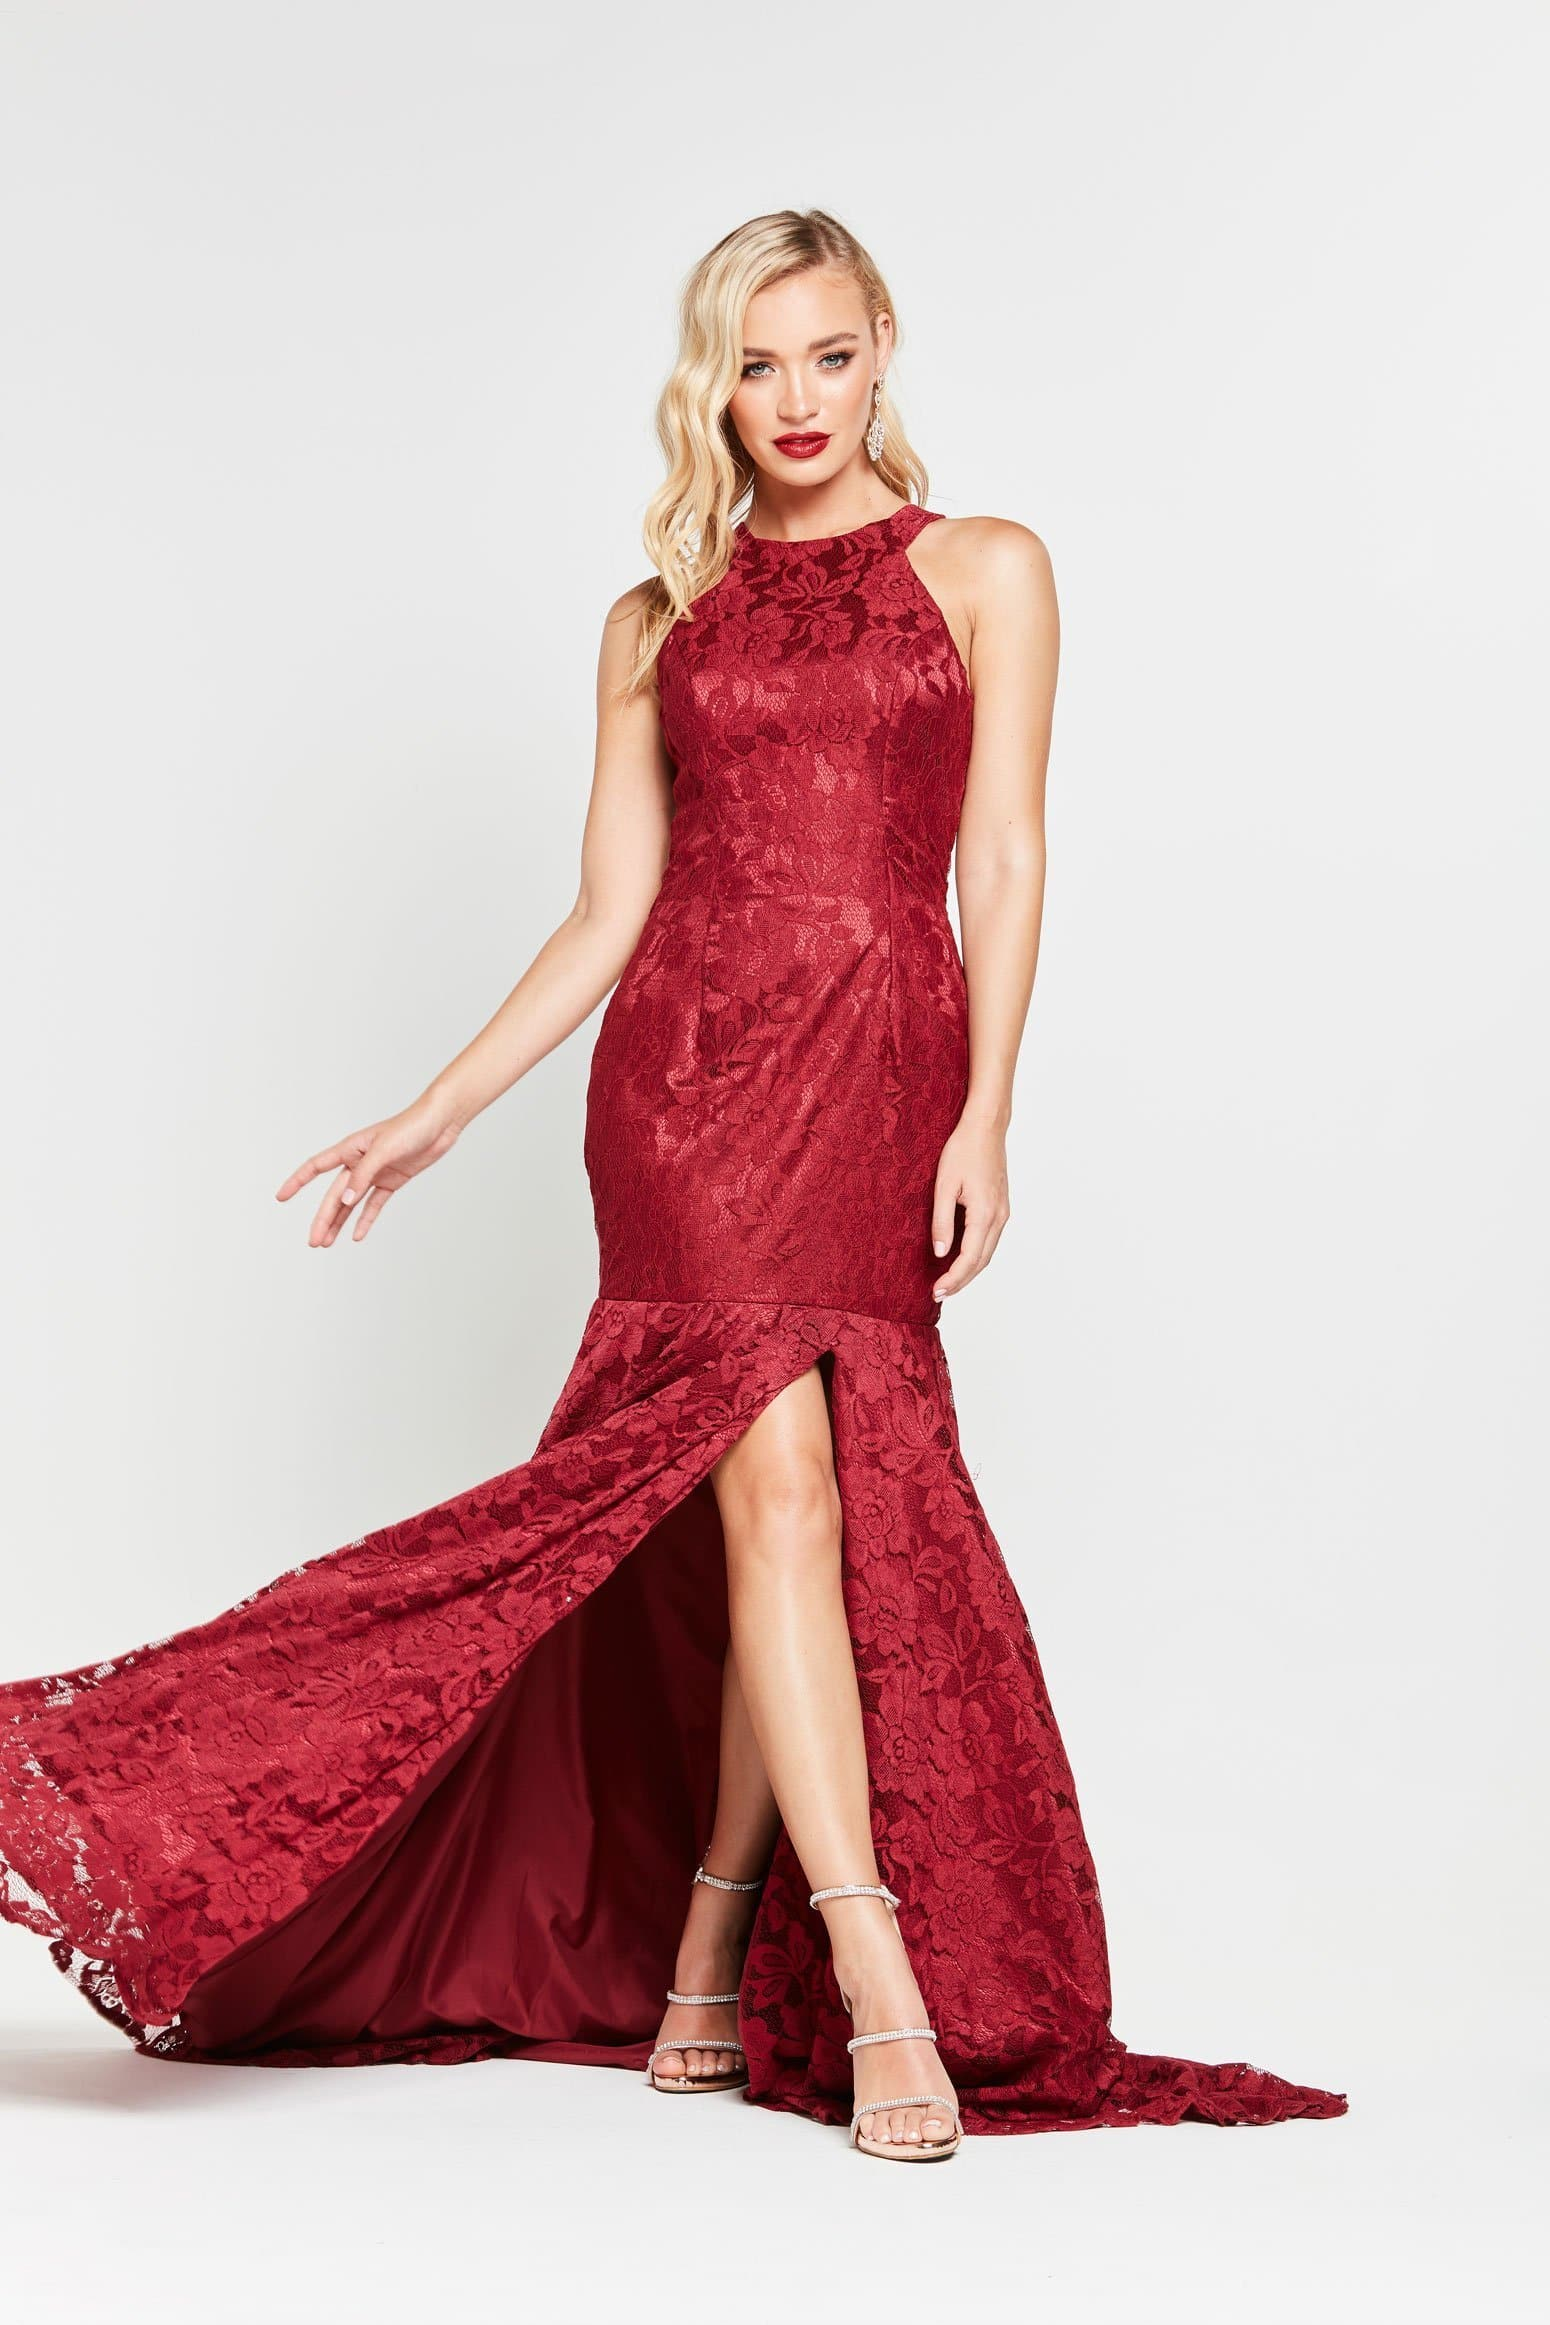 A&N Therese - Burgundy Lace Gown with Halter Neck and Side Slit